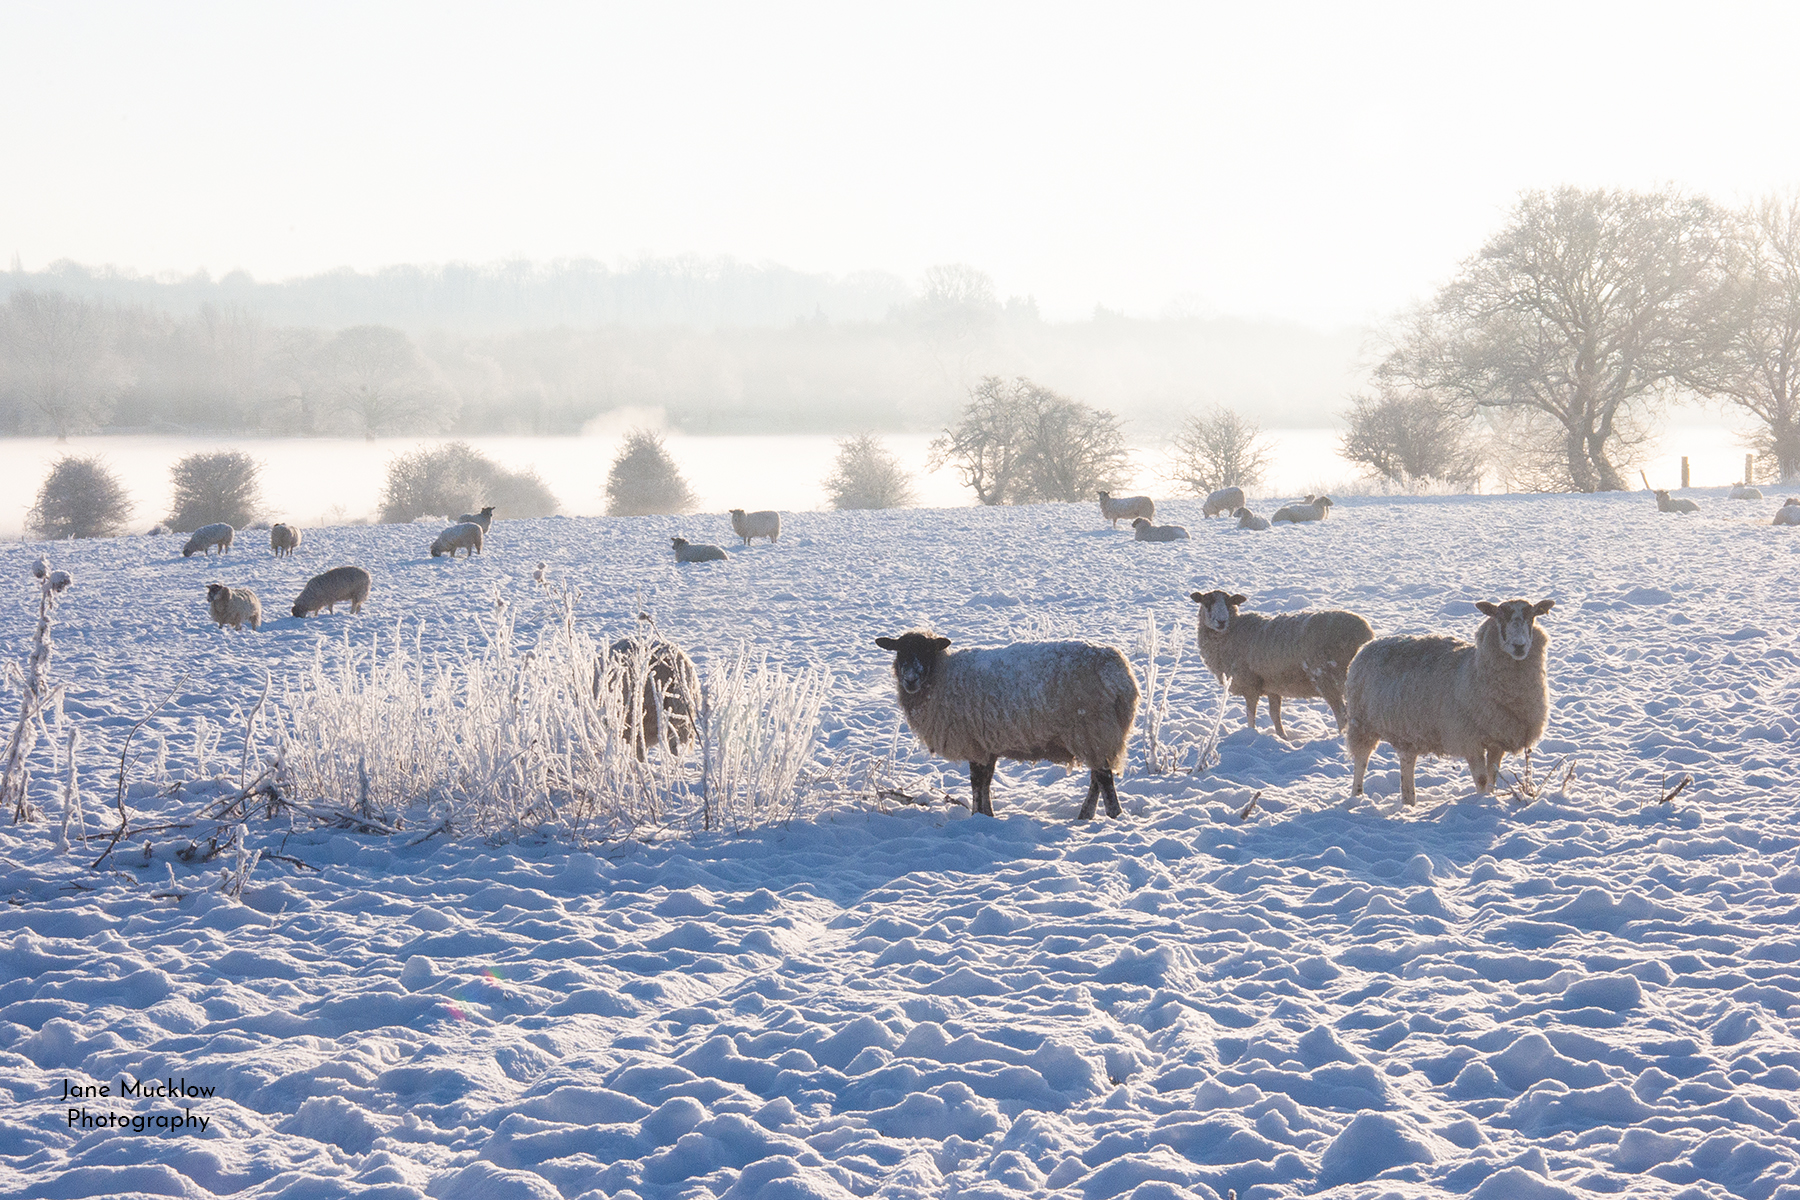 Photograph by Jane Mucklow of a snowy sunrise over a sheep field, the view towards Sevenoaks, Kent